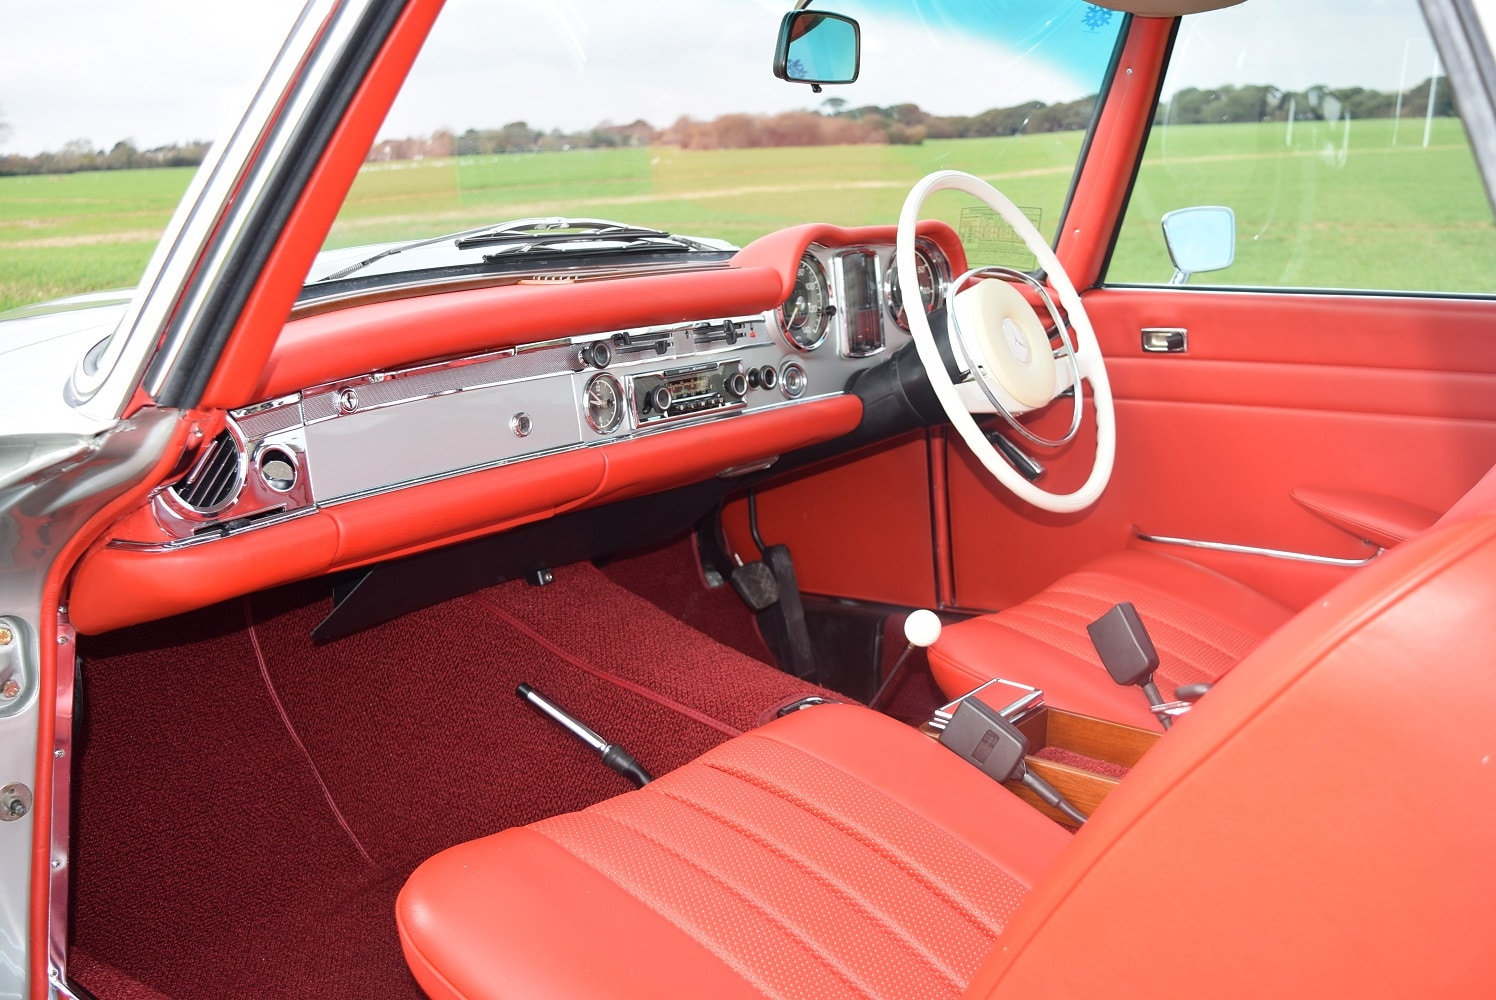 Mercedes 280SL/8 Pagoda red leather interior fully restored